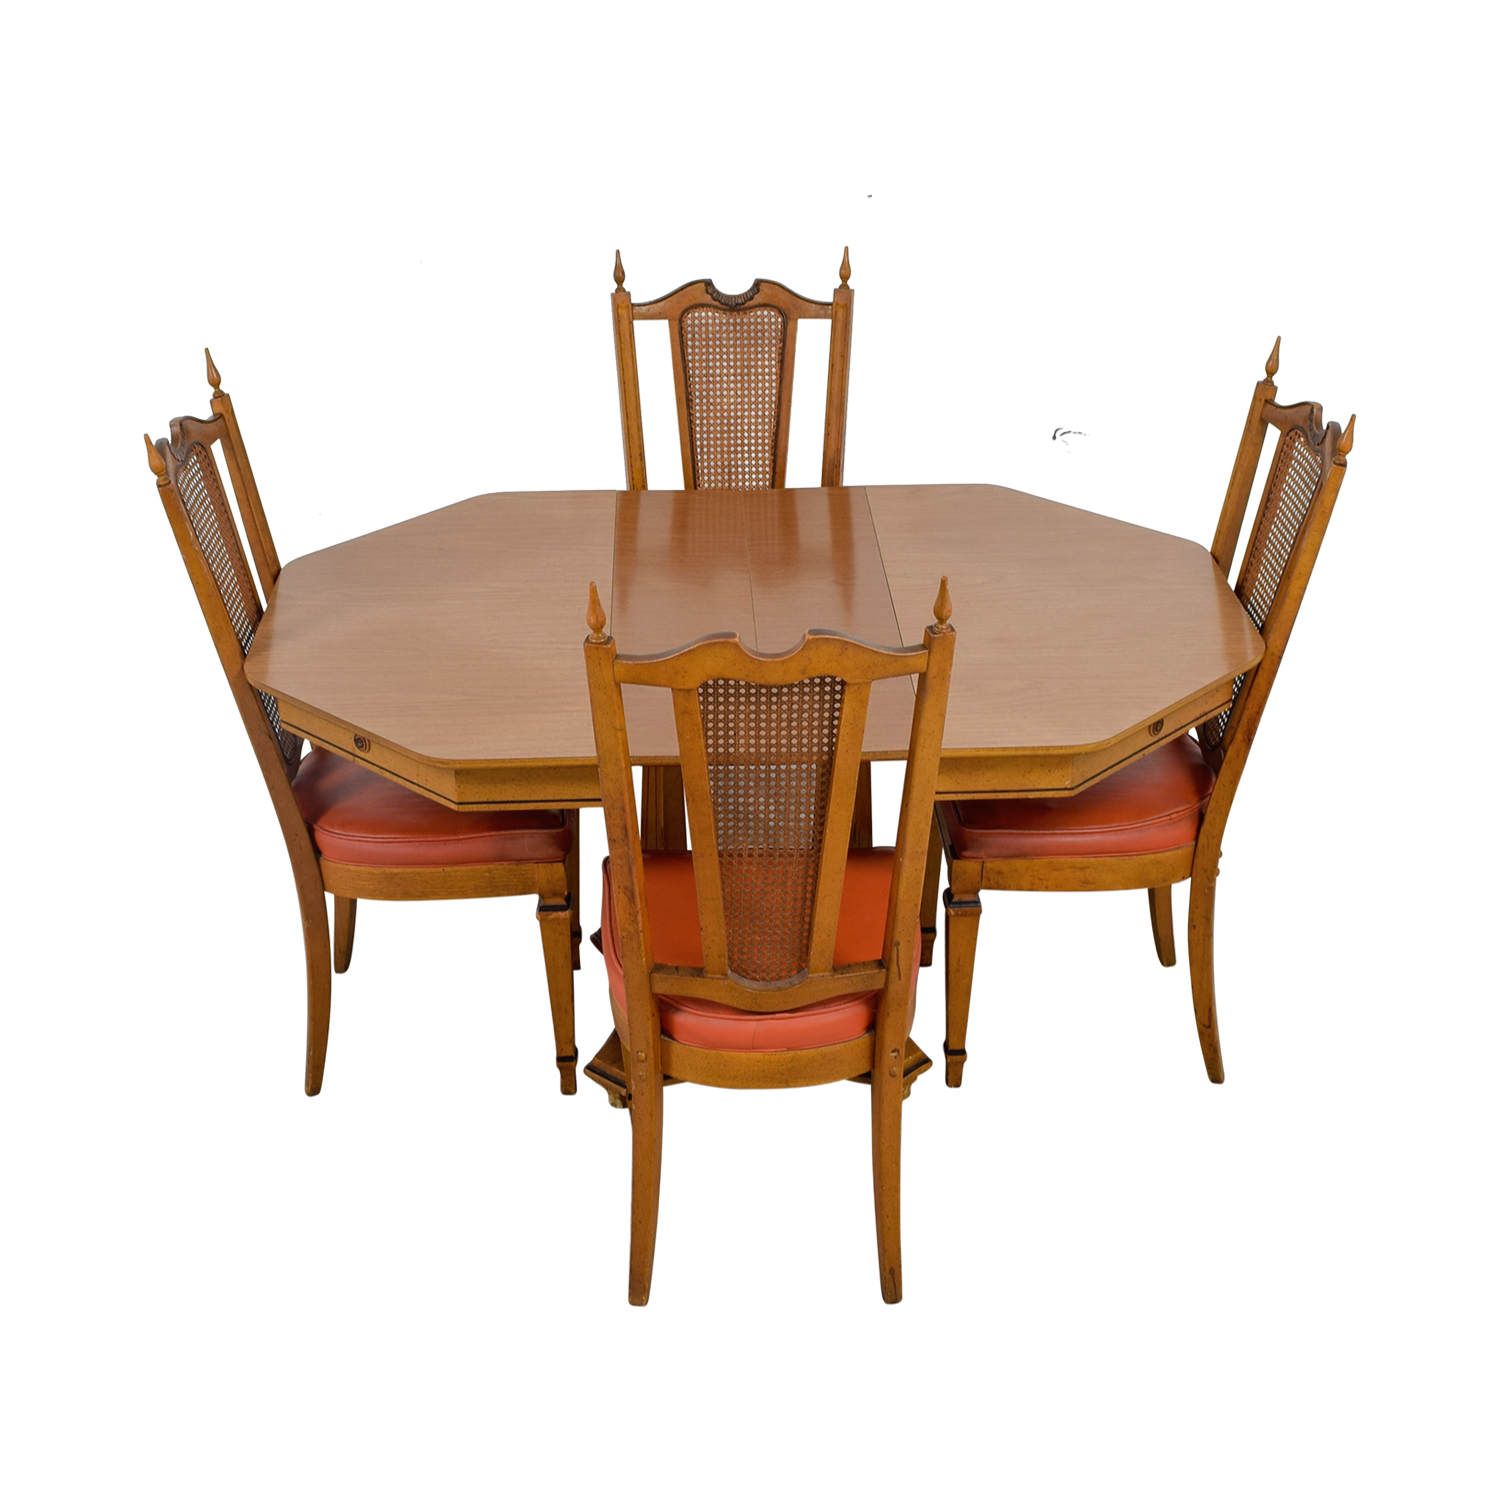 Walter Wabash Walter Wabash Extendable Wood Dining Set with Red Upholstered Canned Chairs price